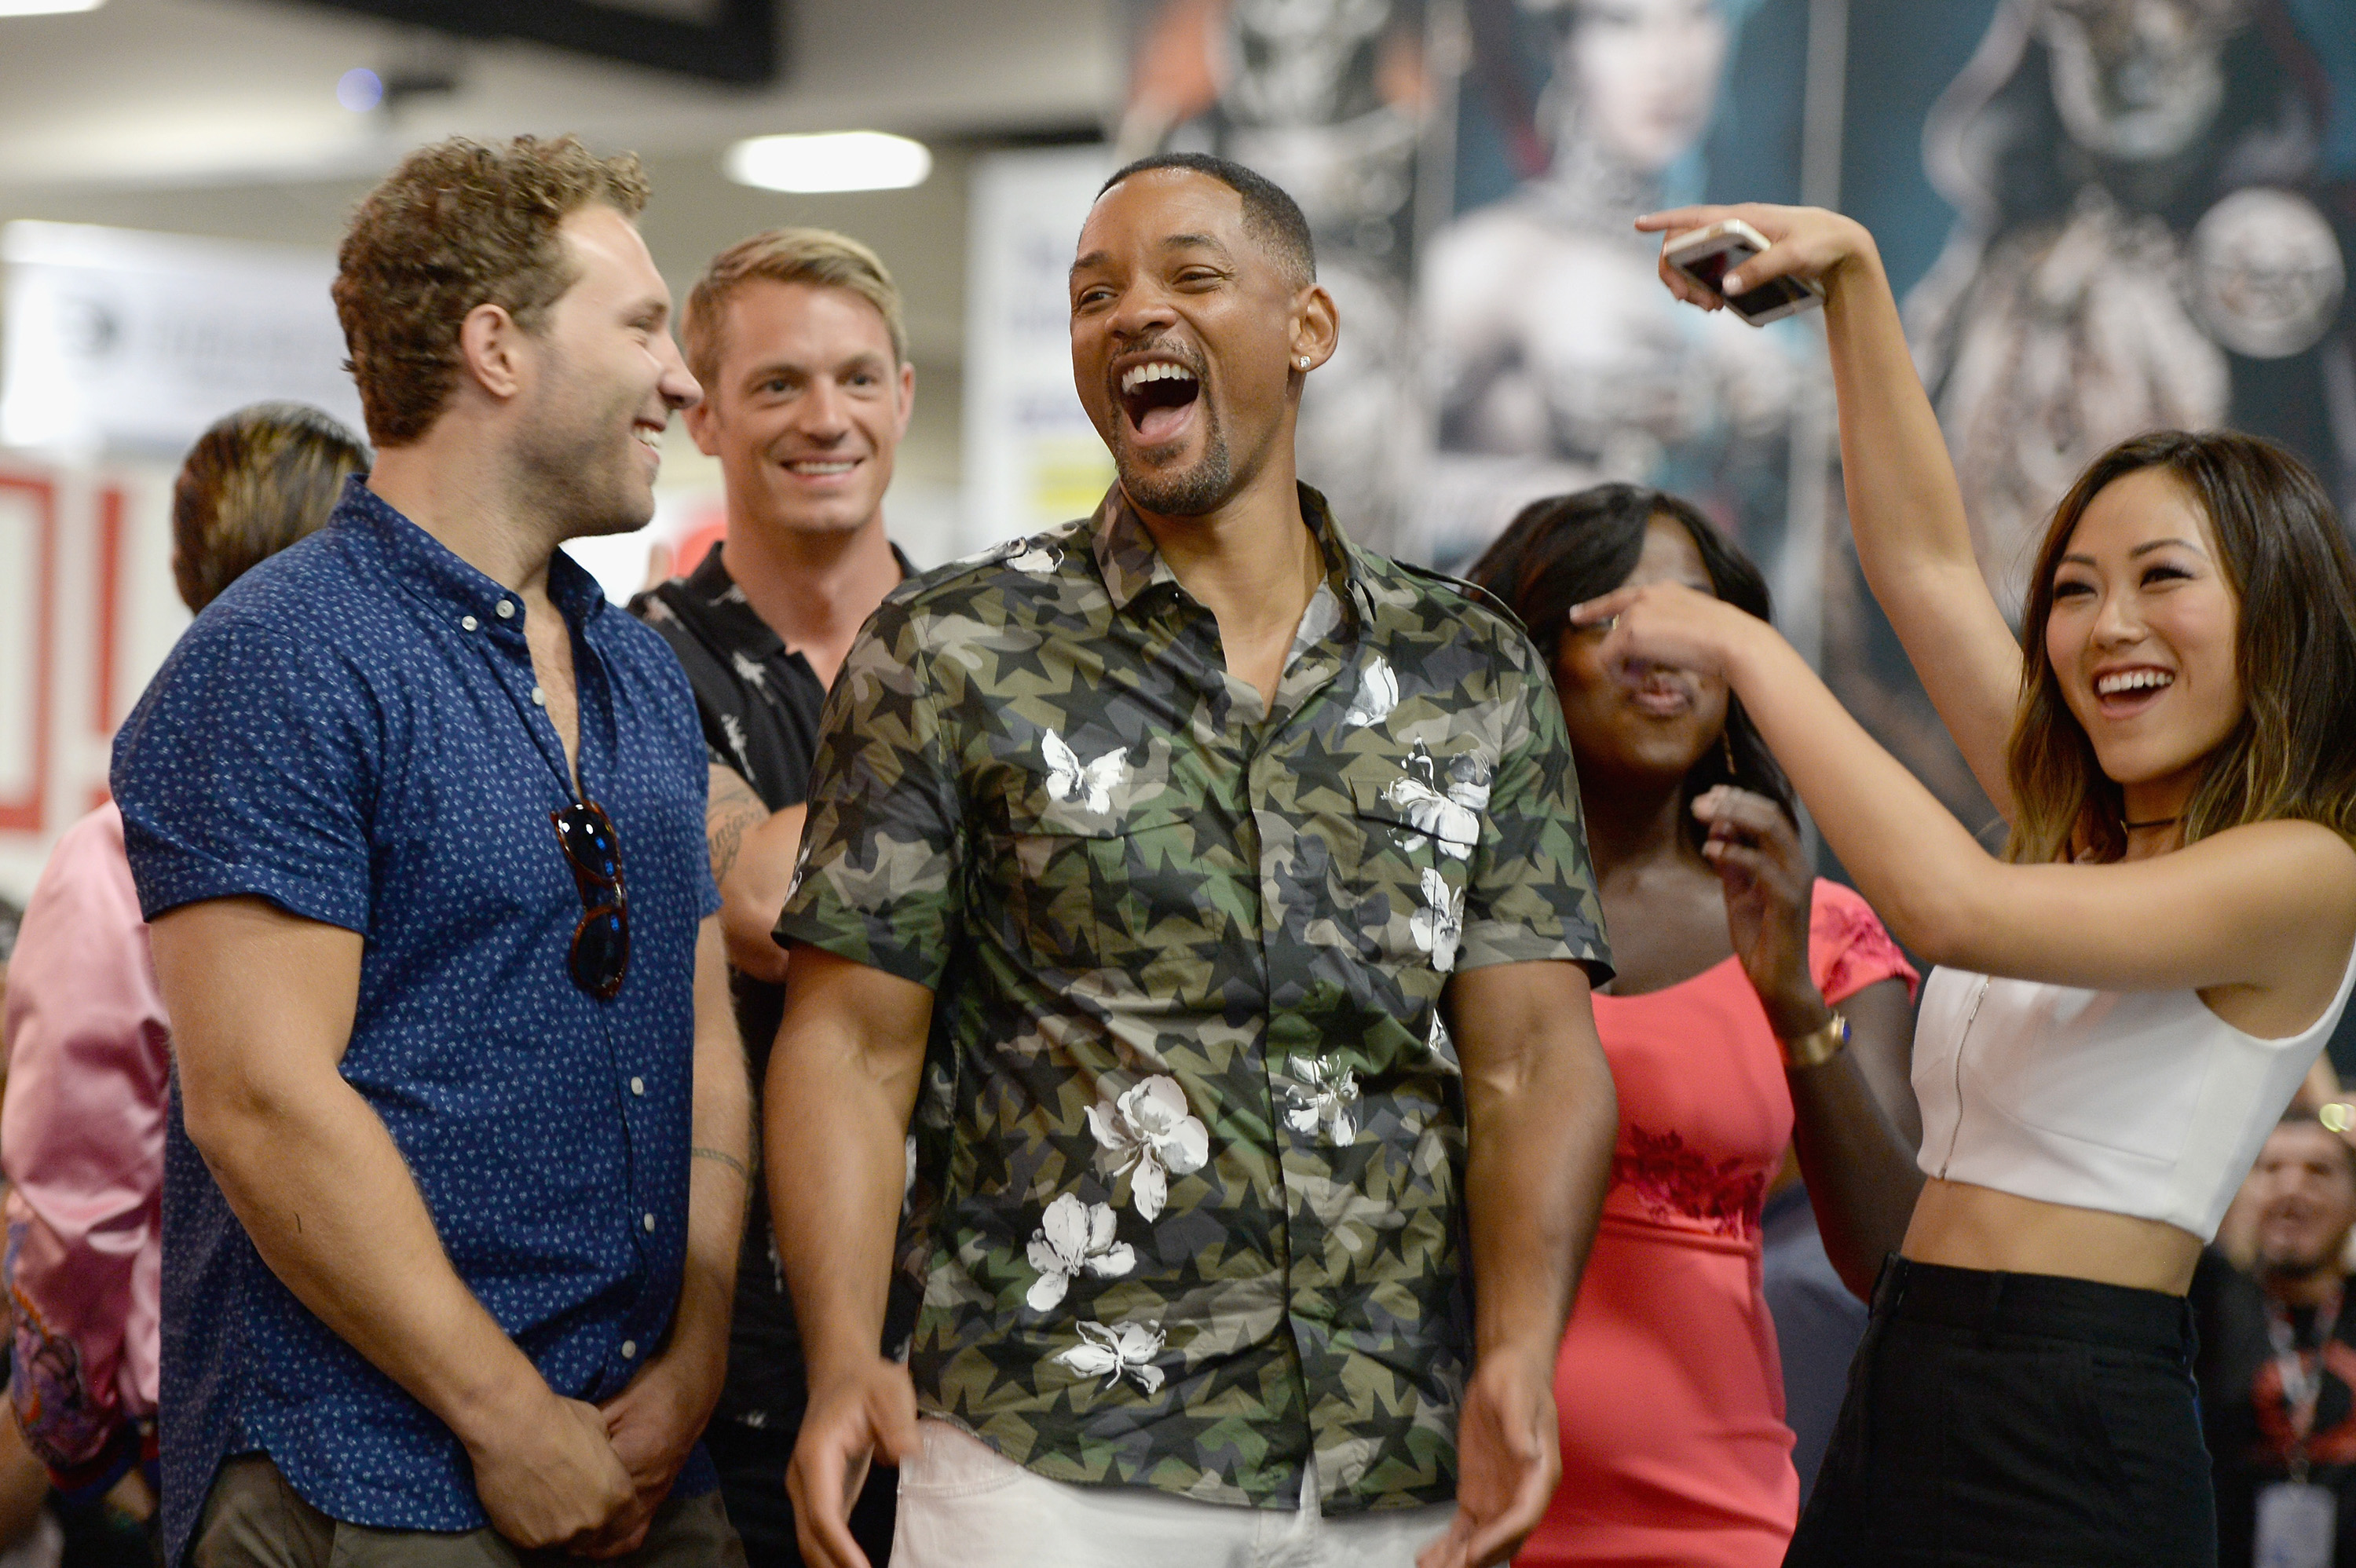 The cast of Suicide Squad participates in an autograph session for fans at DC's 2016 San Diego Comic-Con booth on Saturday, July 23